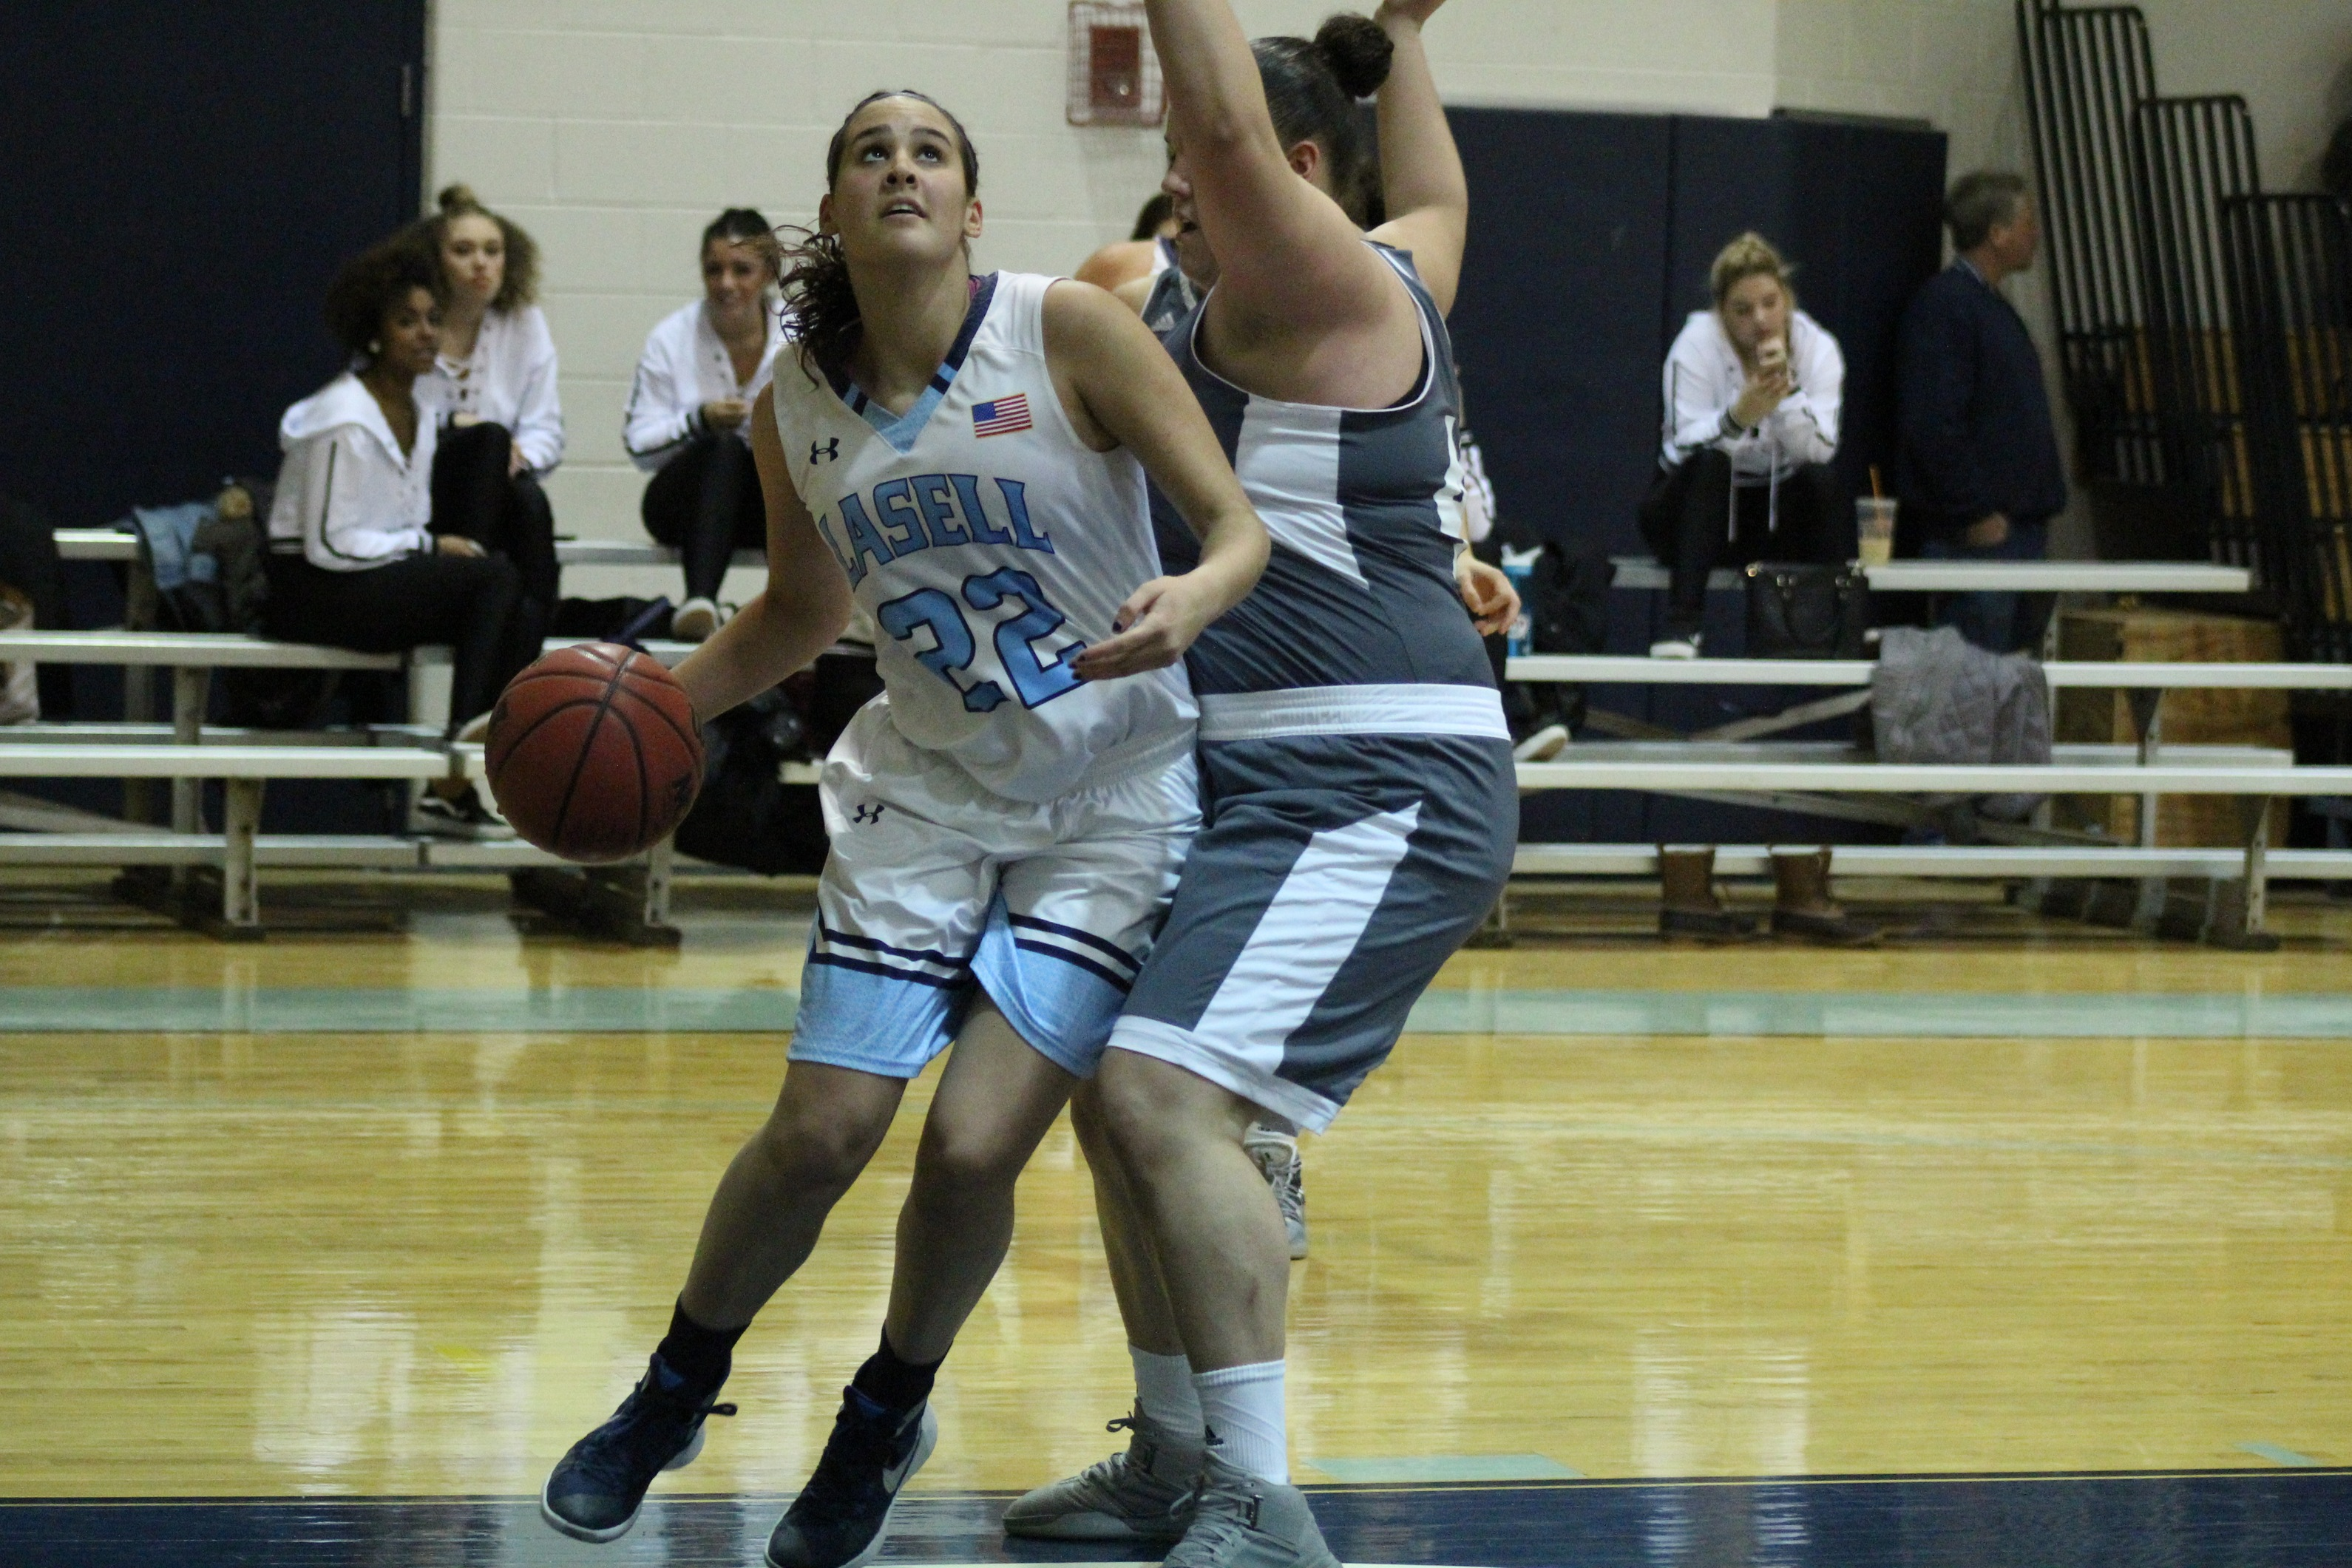 Lasers Fall to USJ 57-52 in GNAC Contest